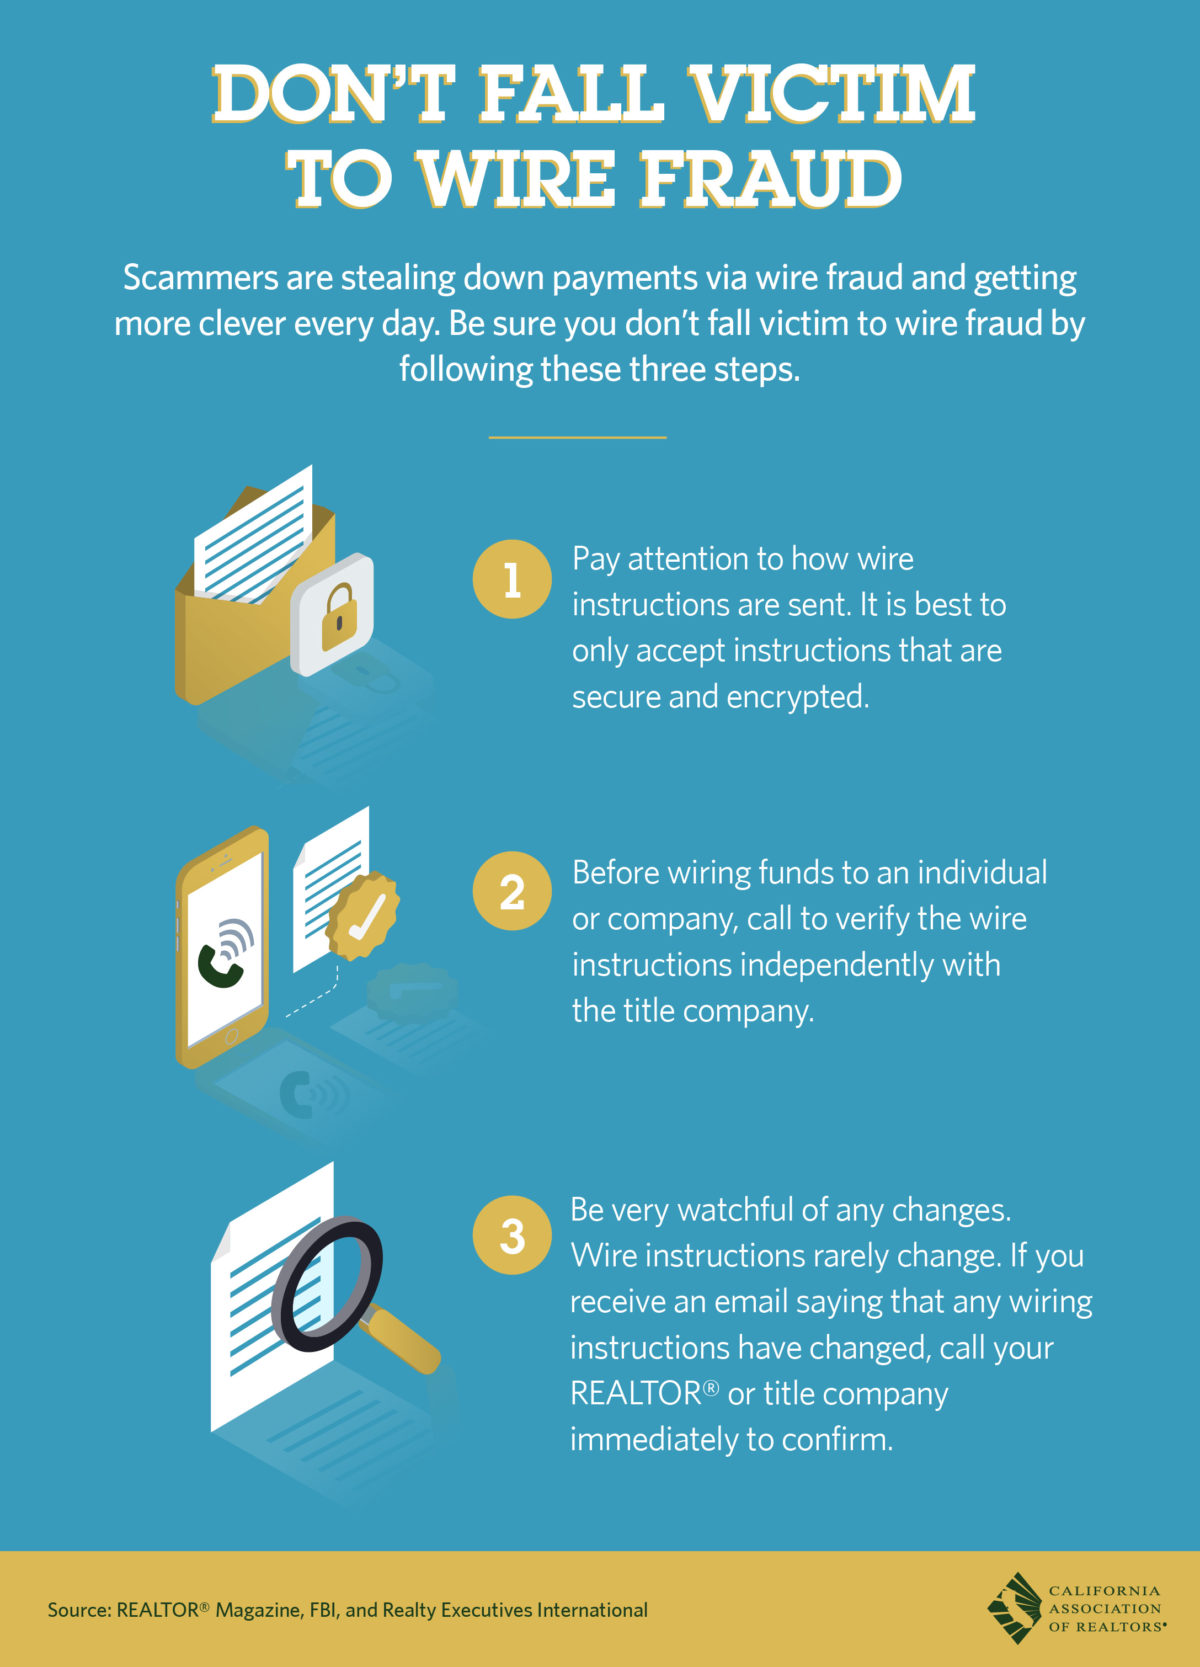 Follow These Rules & Avoid Wire Fraud | Canvass Properties